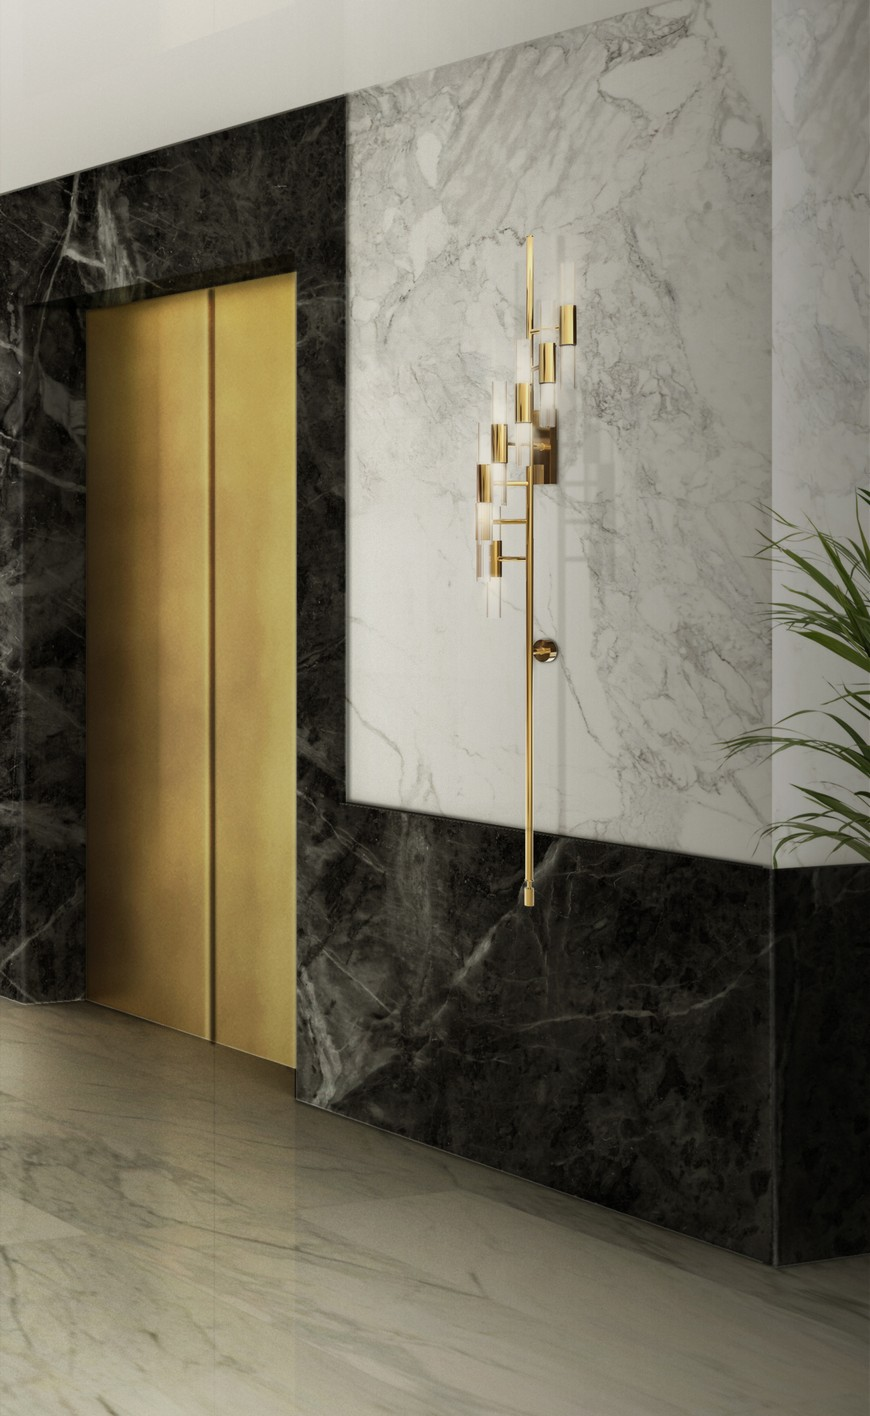 LX Hotel (2) lighting ideas Discover the Most Striking Lighting Ideas to Blossom Your Home Decor LX Hotel 2